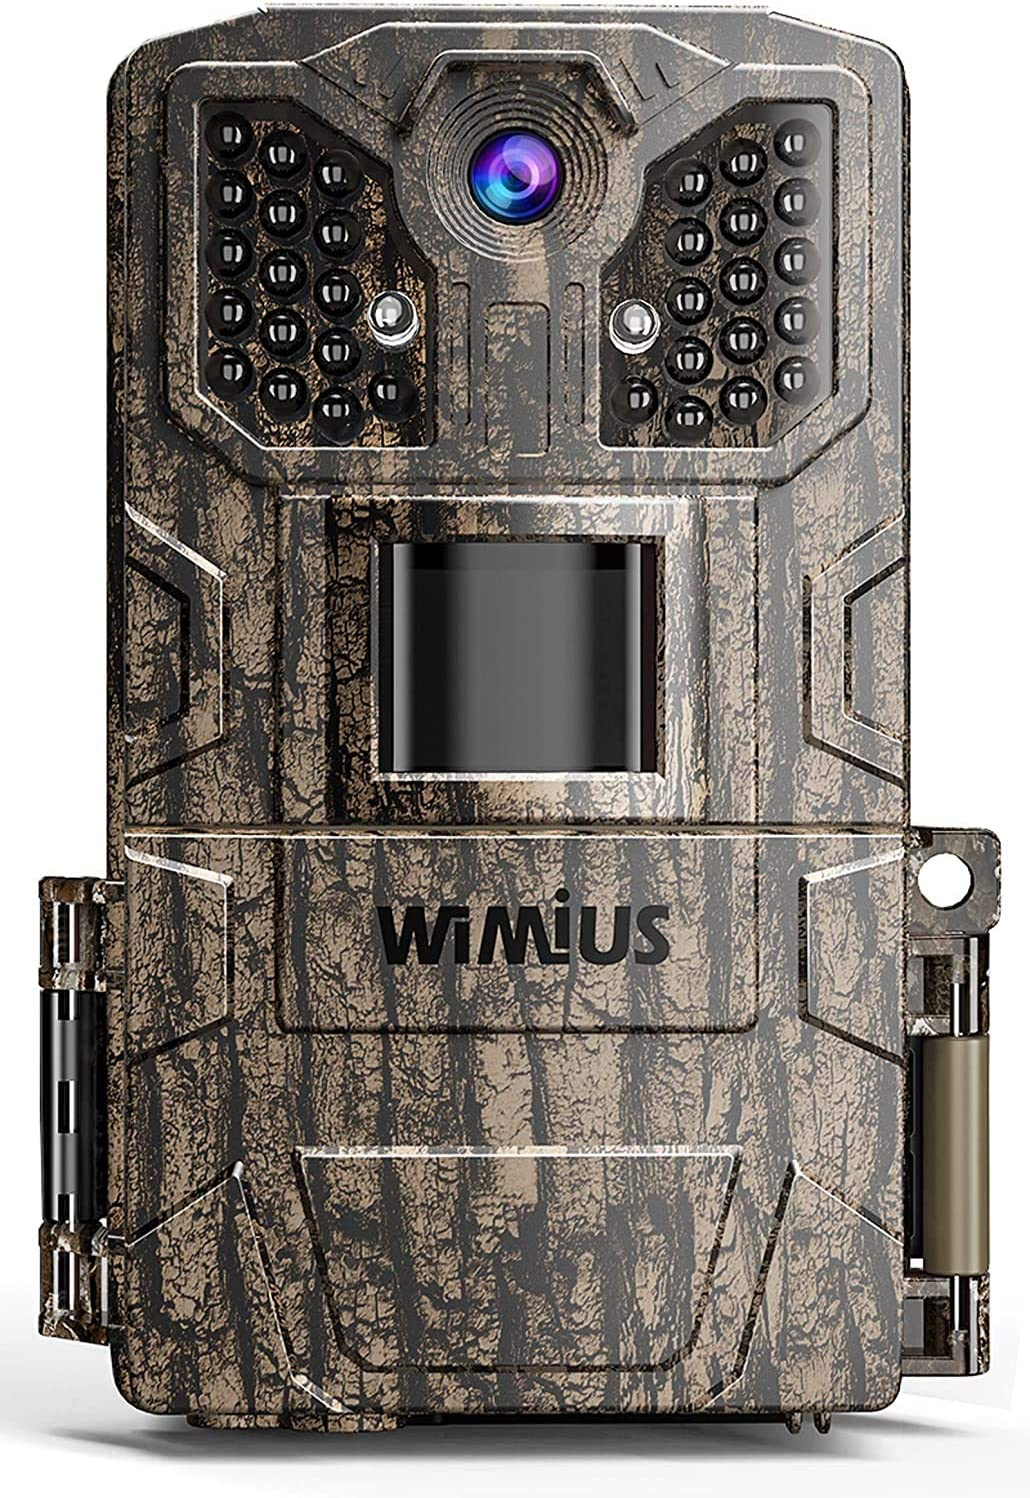 WiMiUS Trail Max 48% OFF Game Camera 24MP 1080P Upgraded〠Outstanding HD 【2021